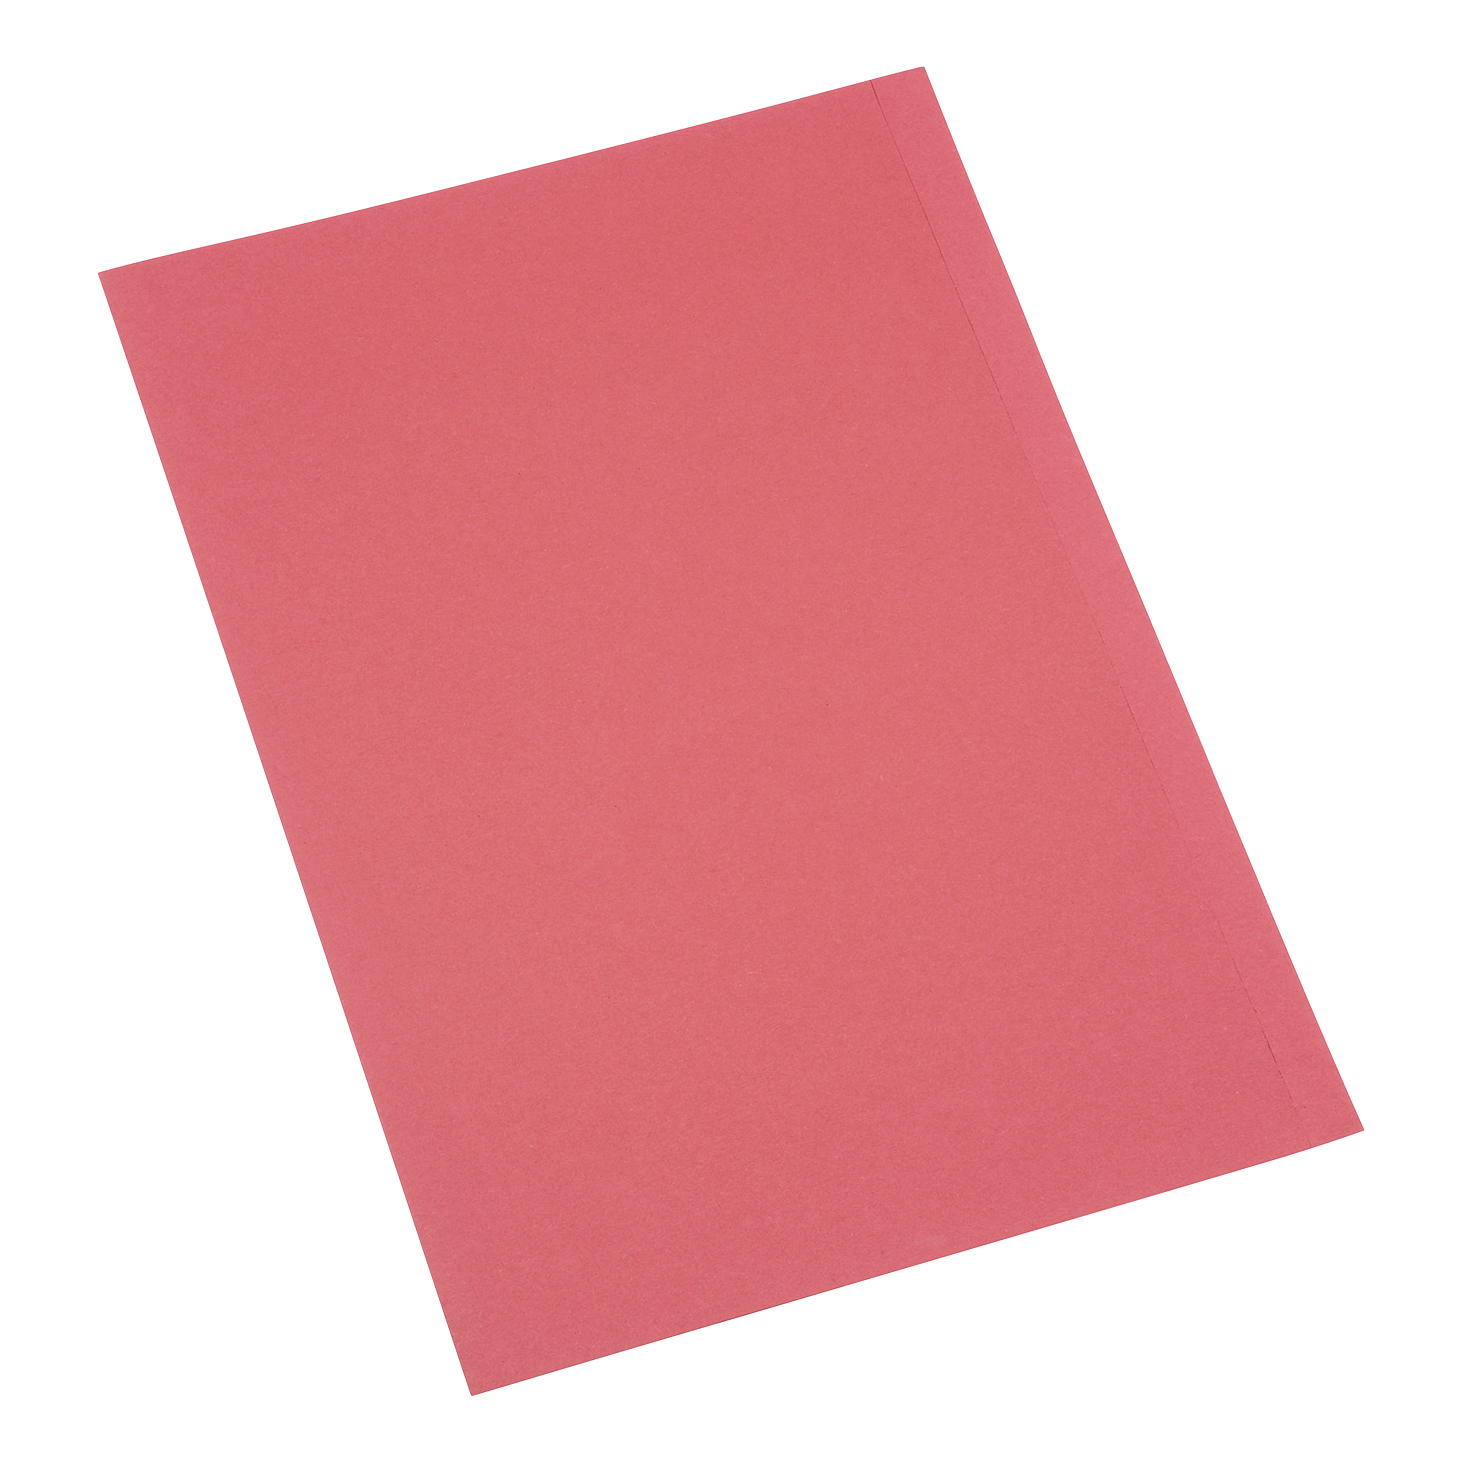 Square Cut Folders 5 Star Office Square Cut Folder Recycled 180gsm Foolscap Red Pack 100